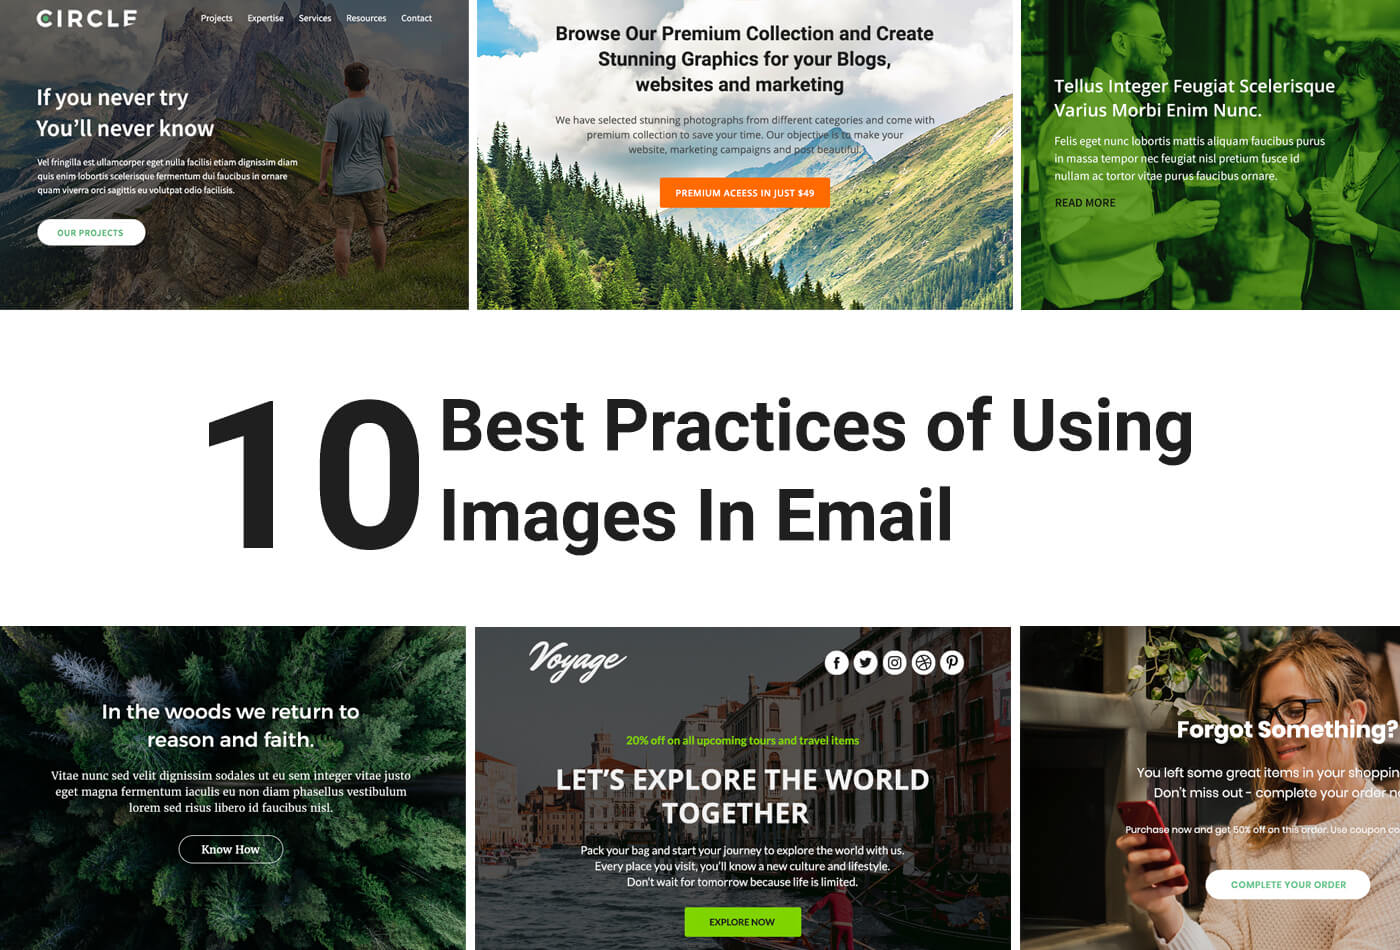 How to use images in email